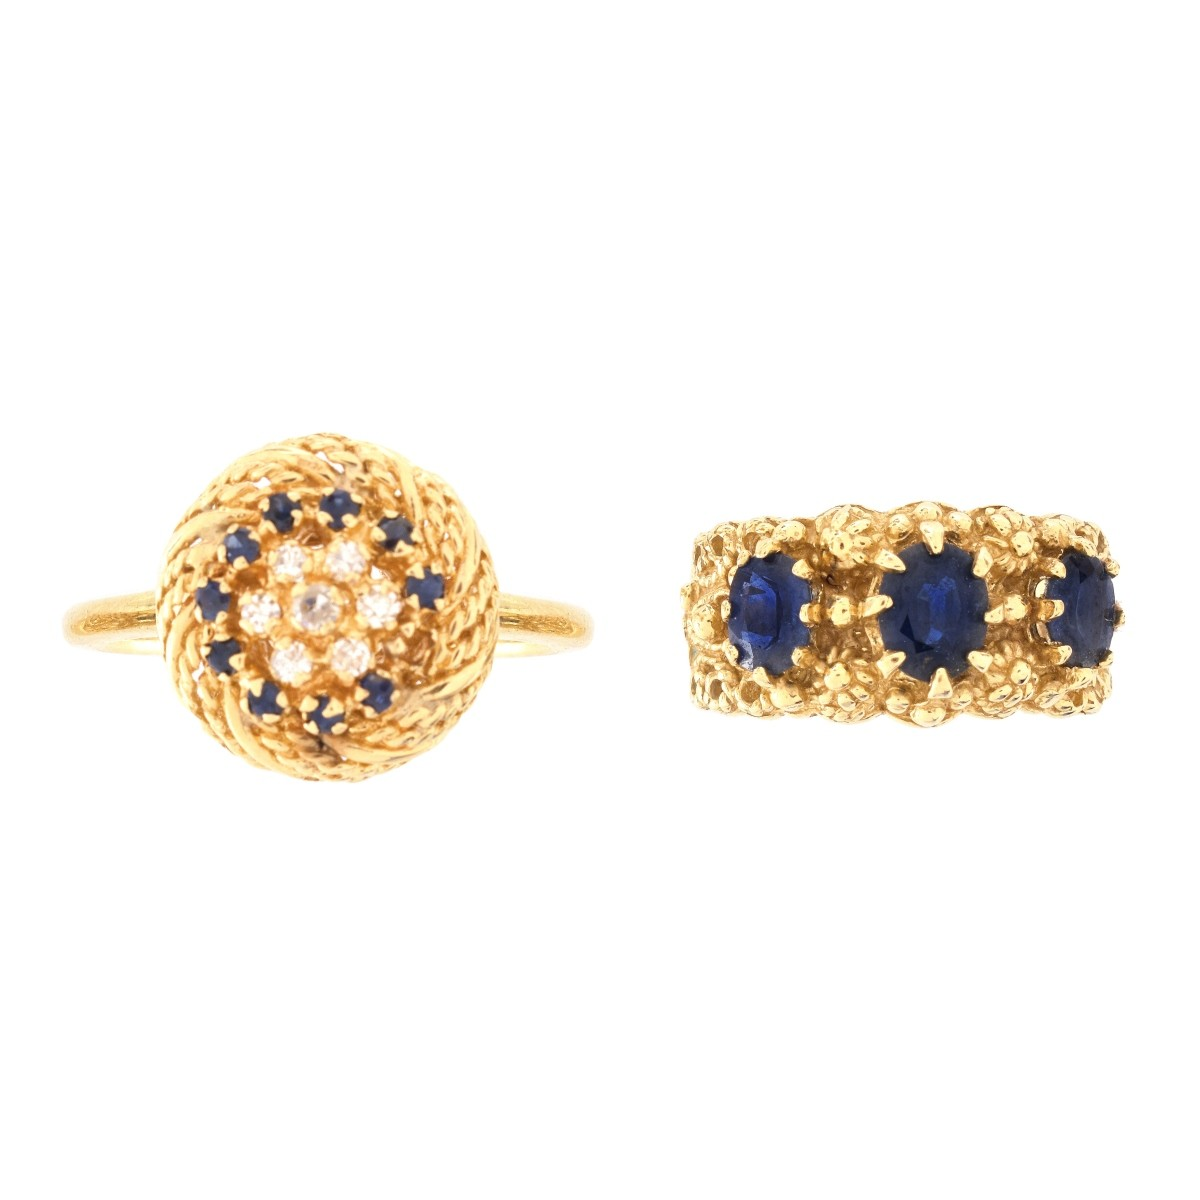 Two 14K and Gemstone Rings